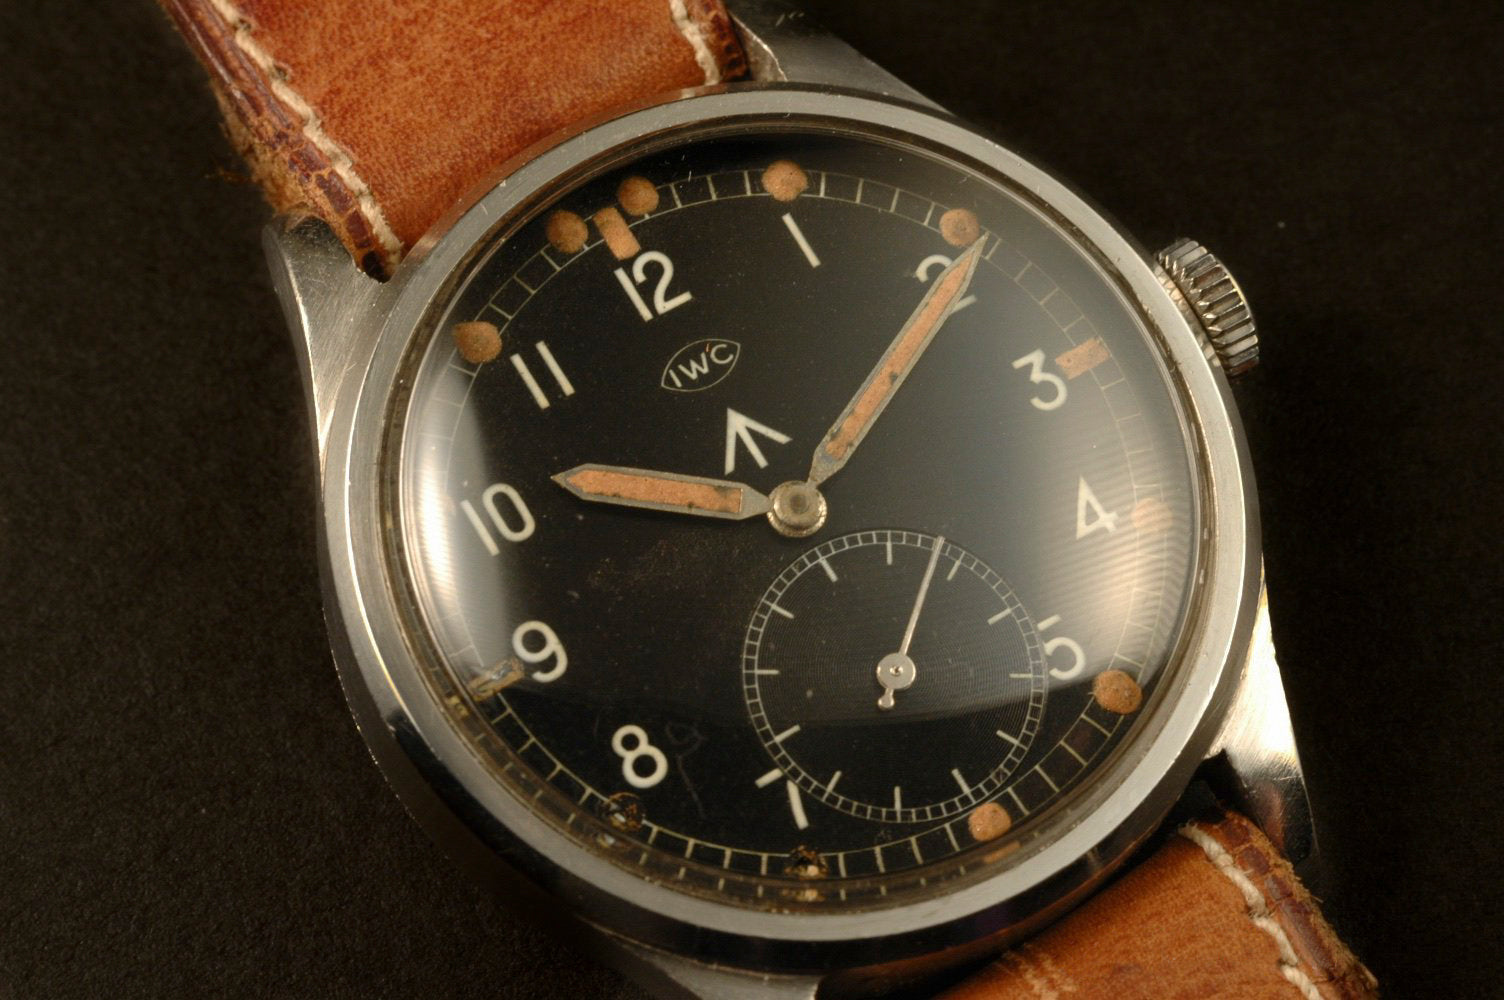 W.W.W. British Dirty Dozen IWC military watch at A Collected Man London vintage military watch specialist